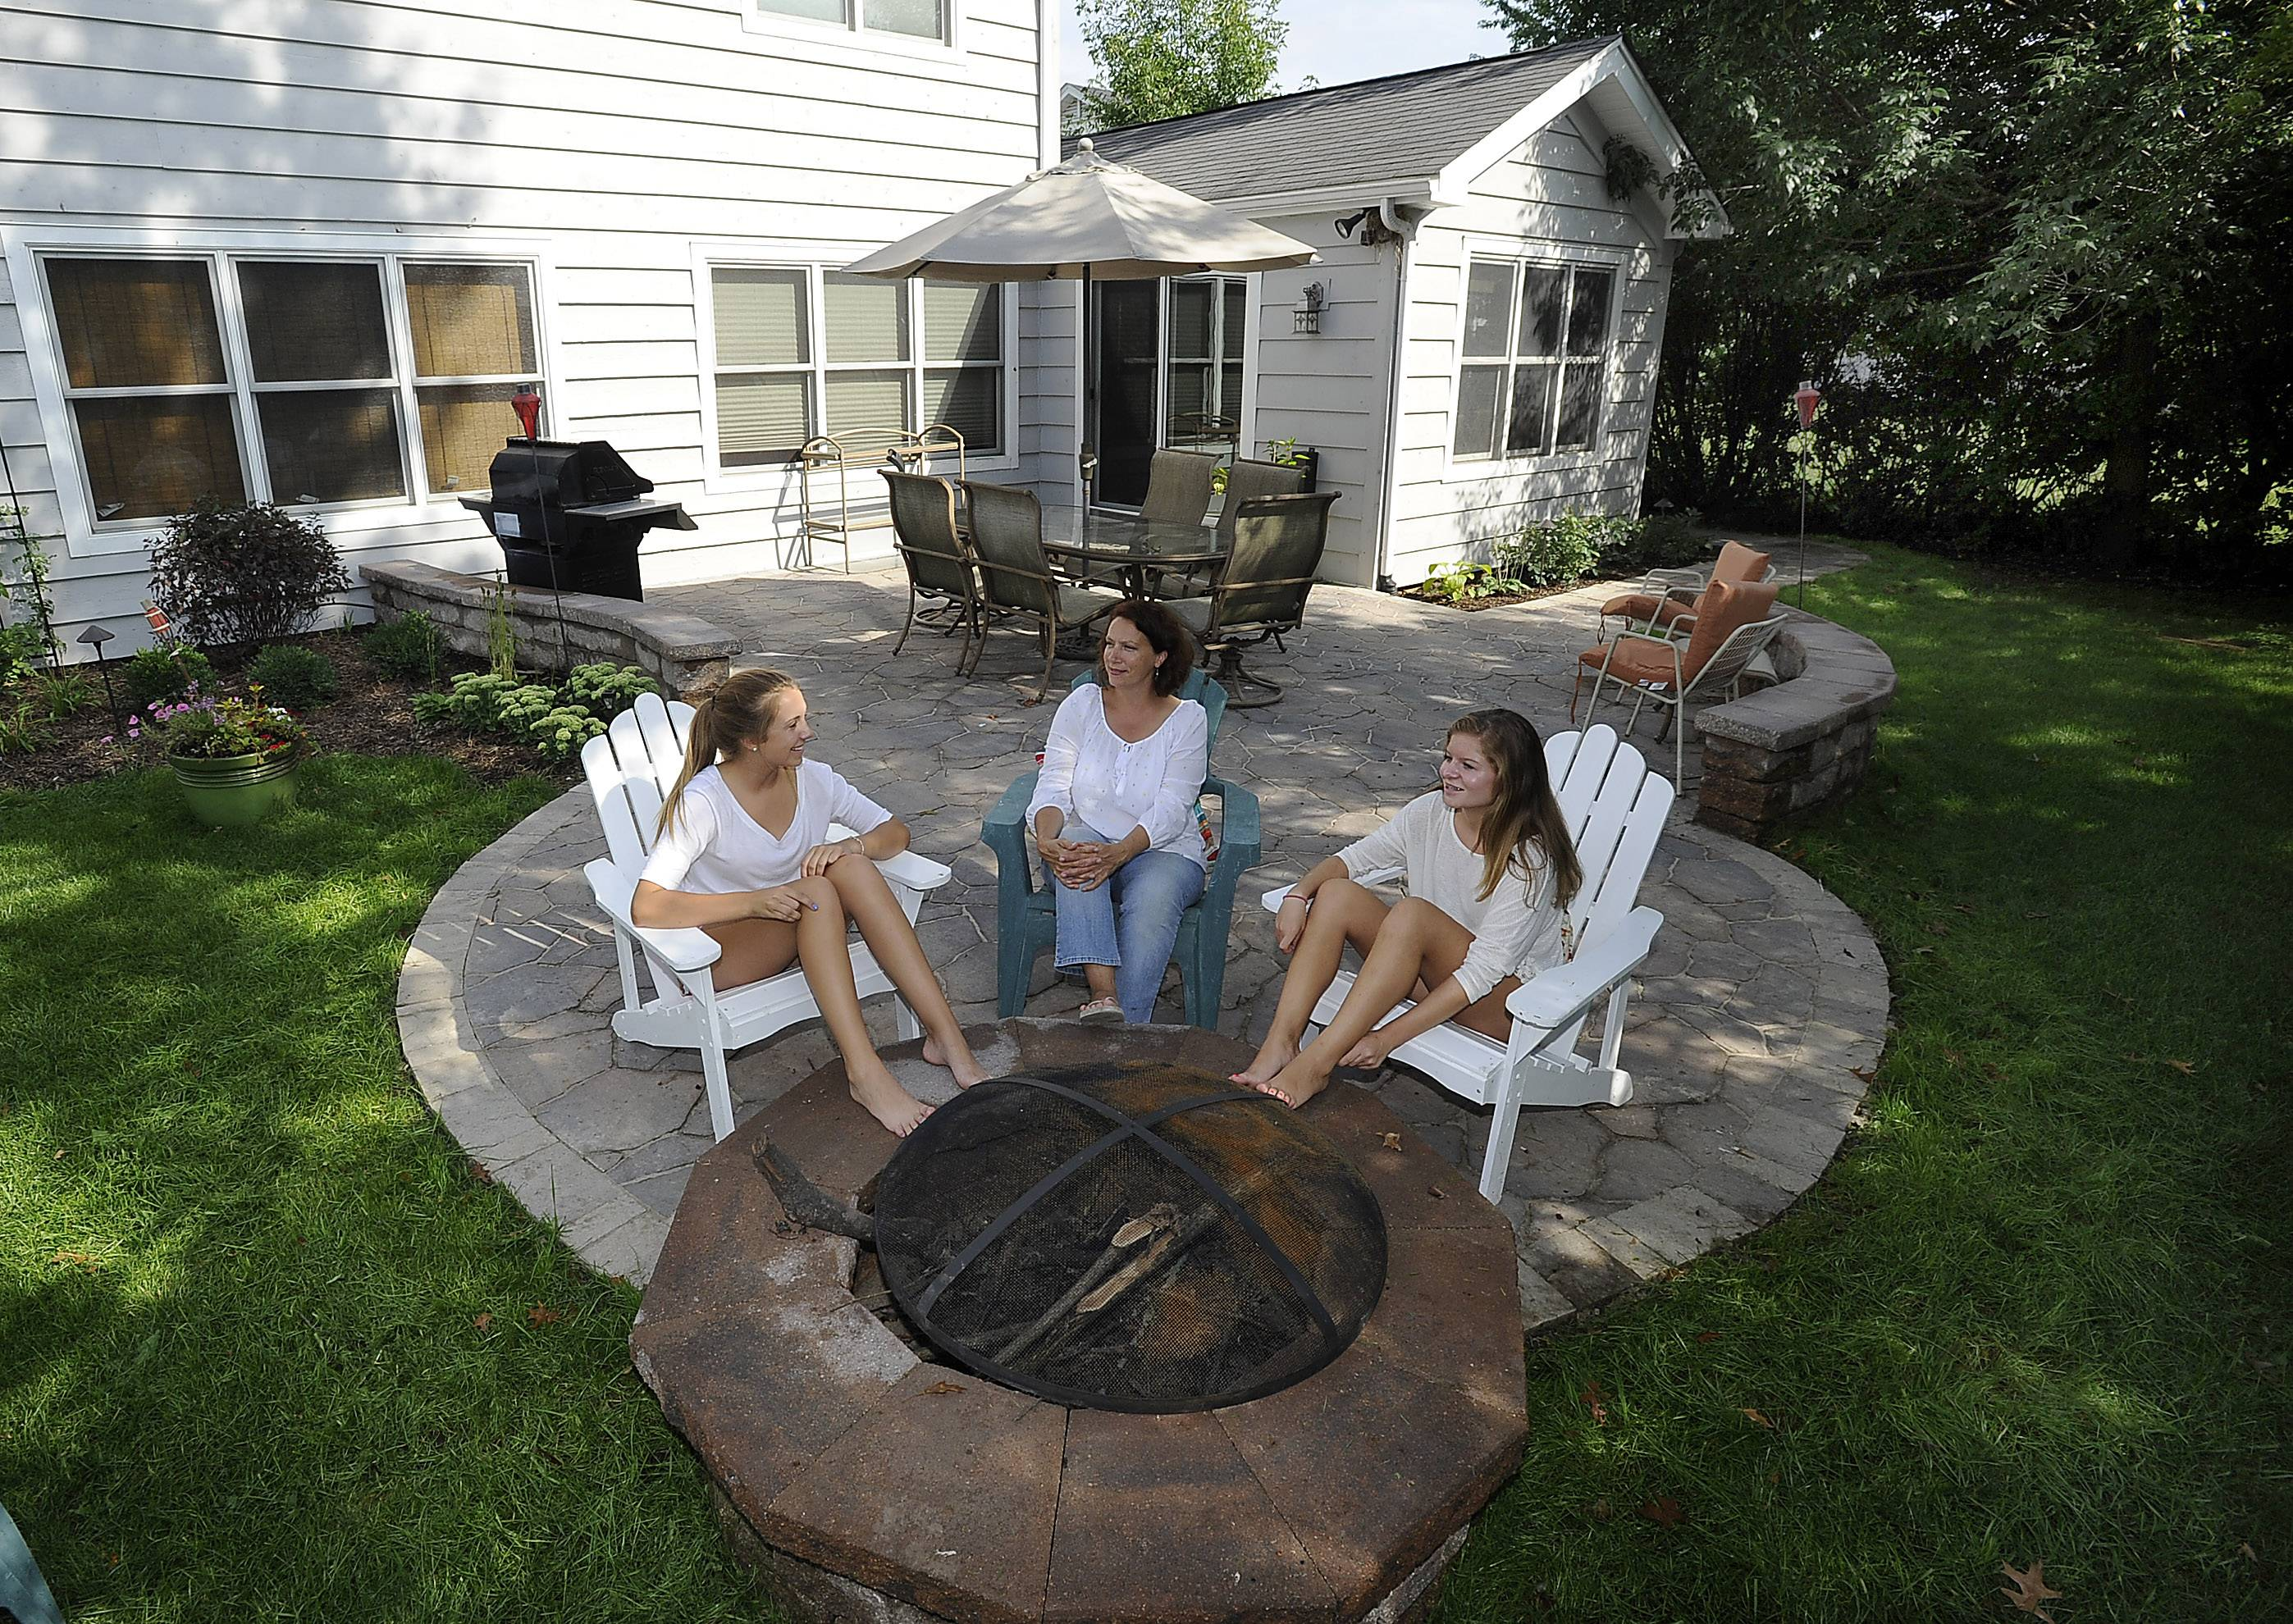 Jenny Kendall of Palatine, center, won a patio makeover package that included new plants, lights, stone pavers and this fire pit as daughter Caroline Kendall, left, and her friend Greta Smolak enjoy this new spot.